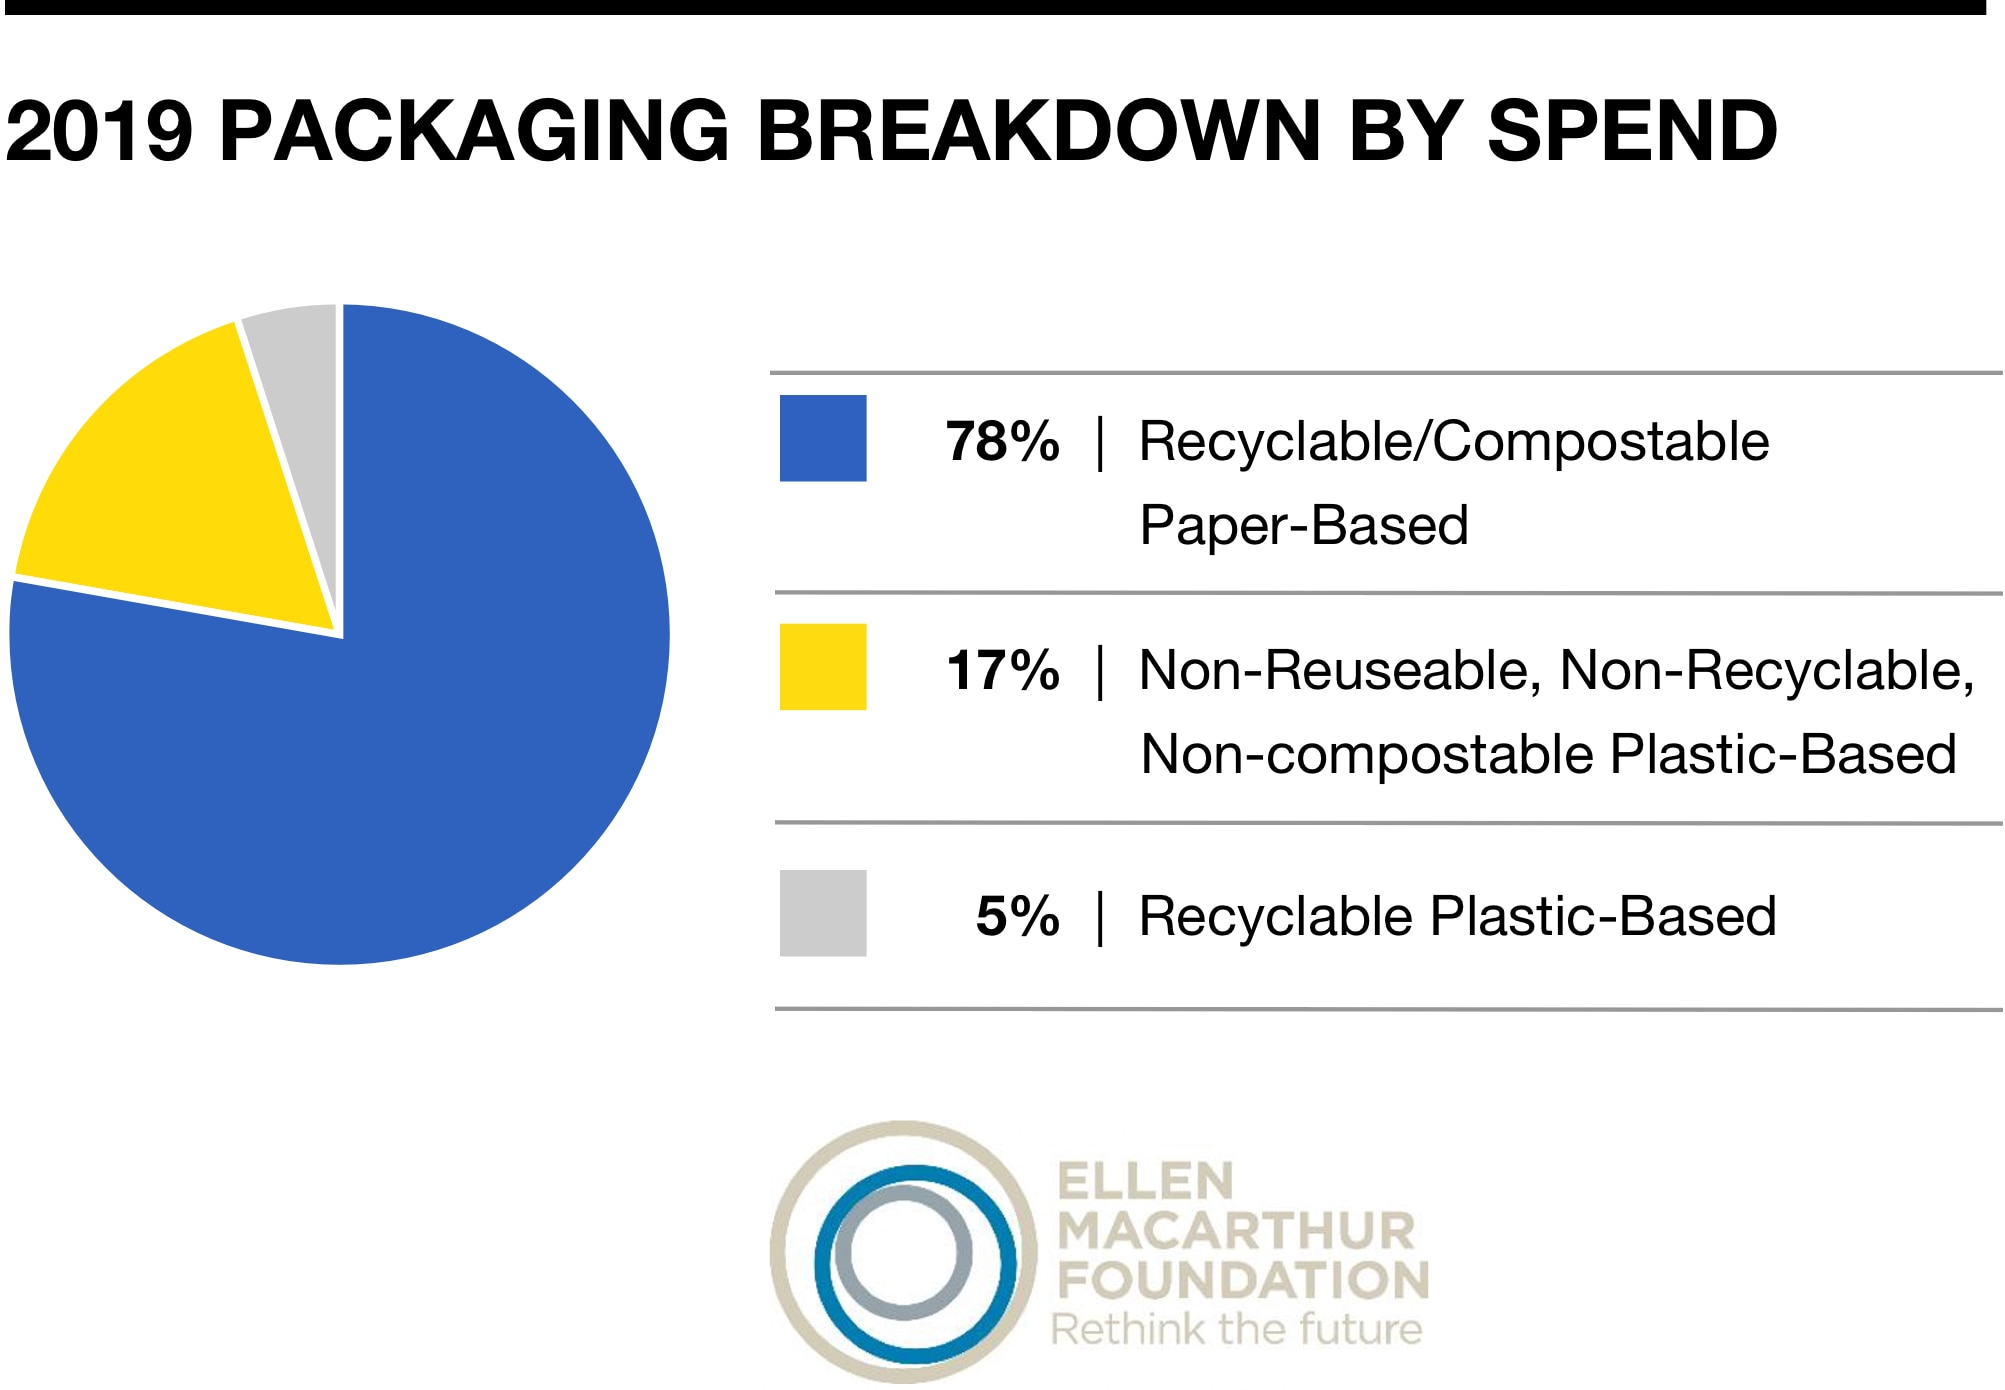 2019 Packaging Breakdown by Spend